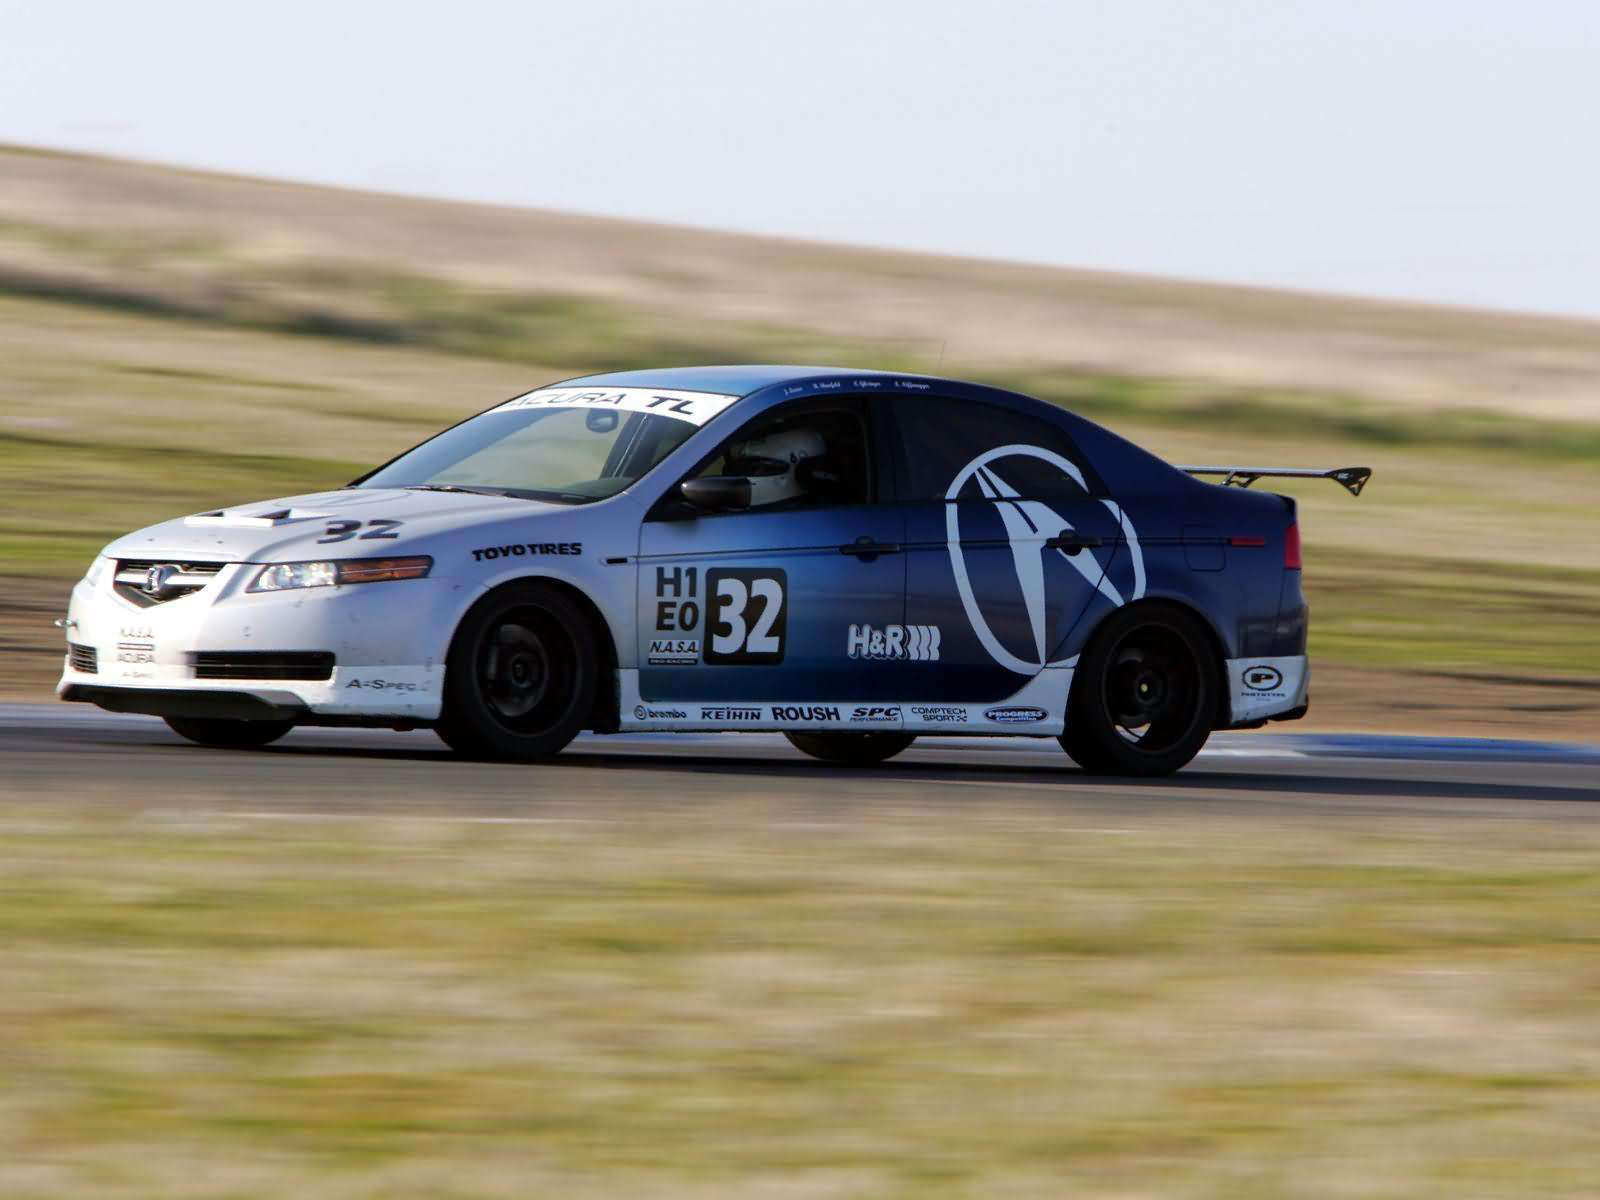 2004 Acura Tl 25 Hours Of Thunderhill Desktop Wallpaper HD Wallpapers Download free images and photos [musssic.tk]